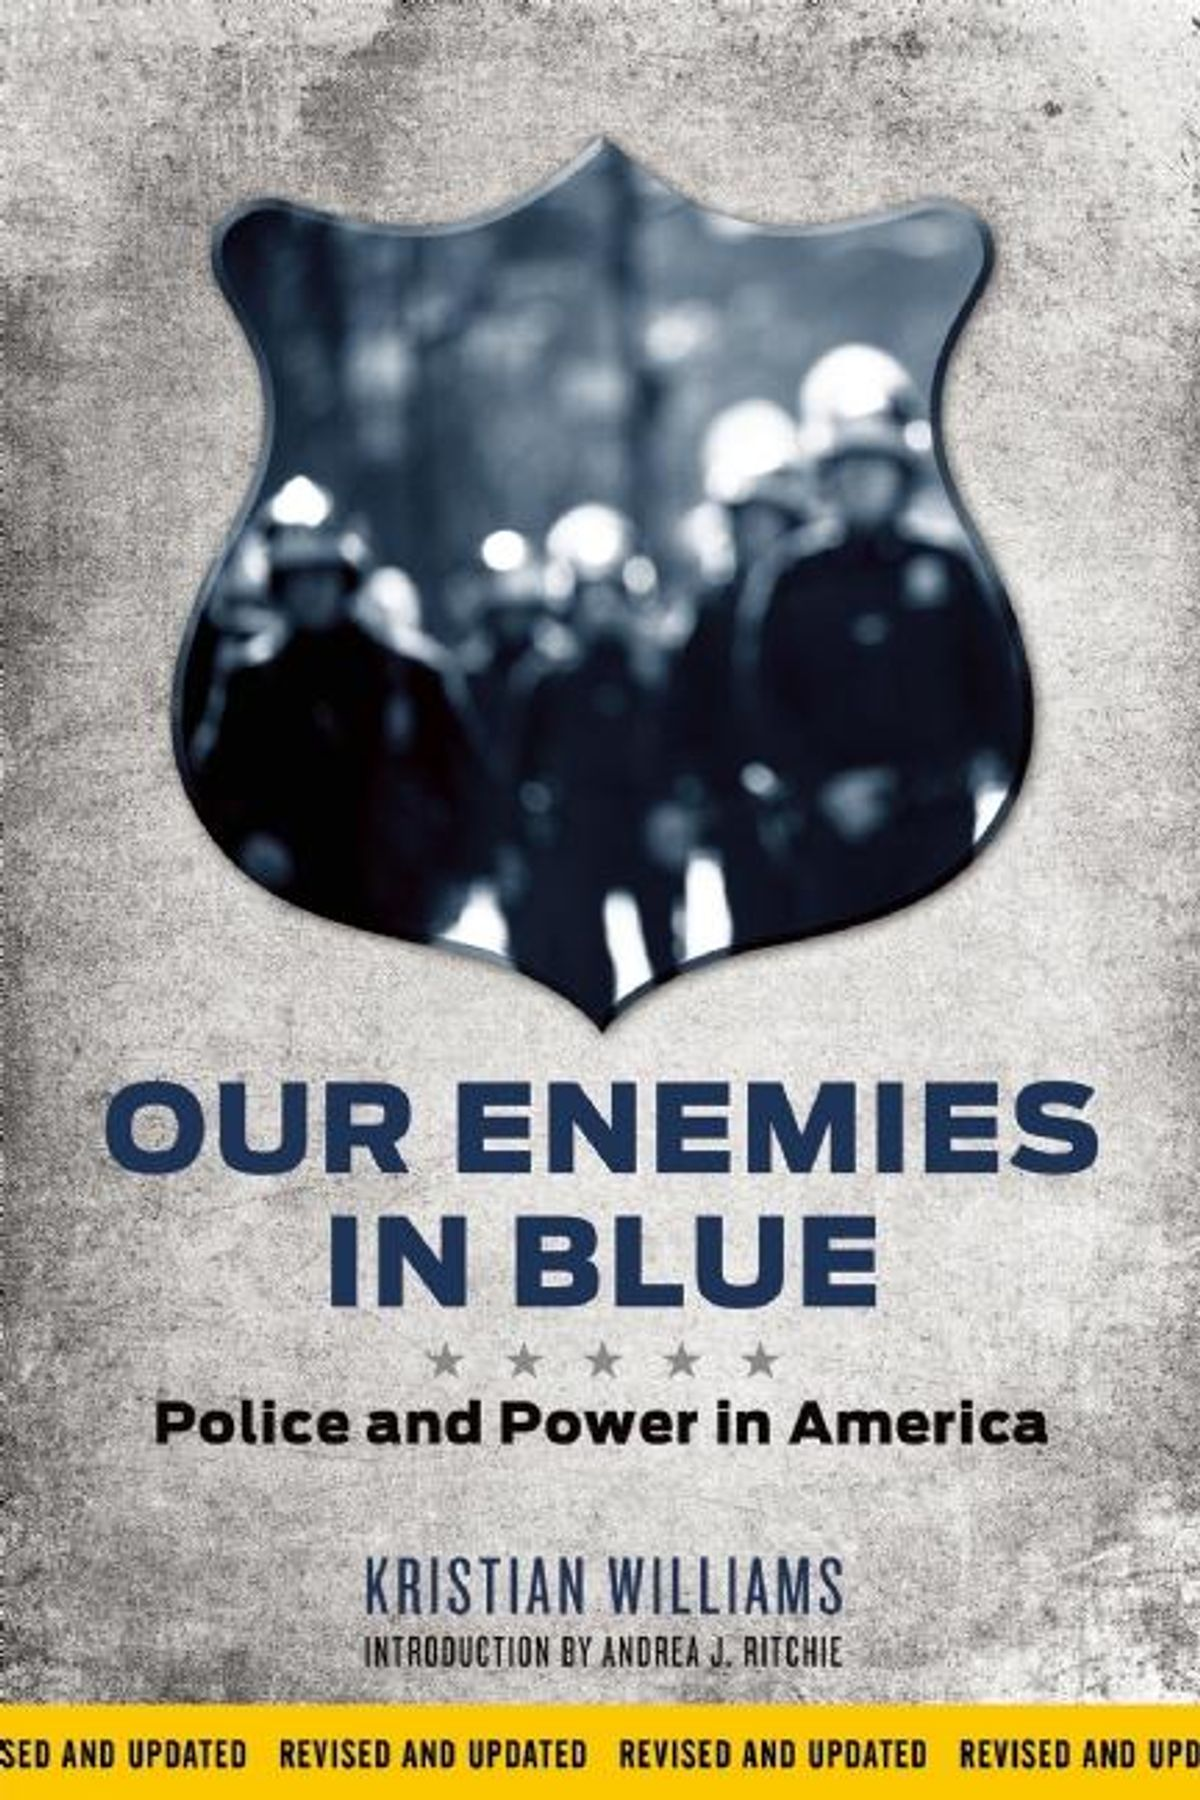 a gray book cover with Our Enemies in Blue written in blue letter and a gray shield